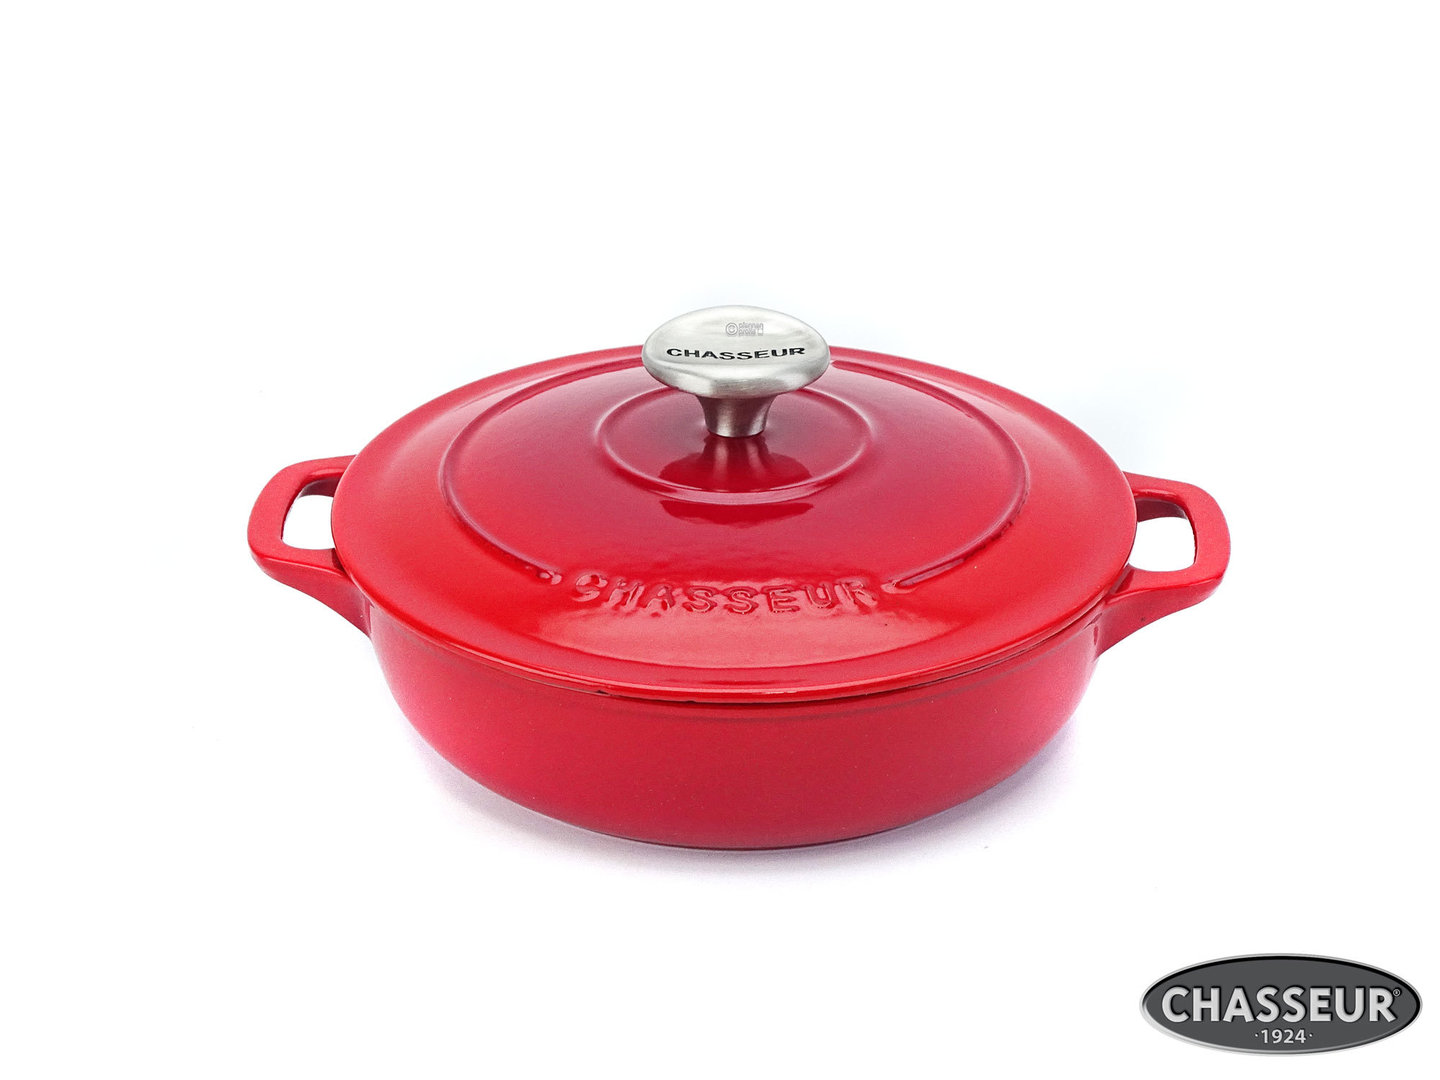 CHASSEUR shallow cast iron casserole 20 cm ruby-red enamel with lid